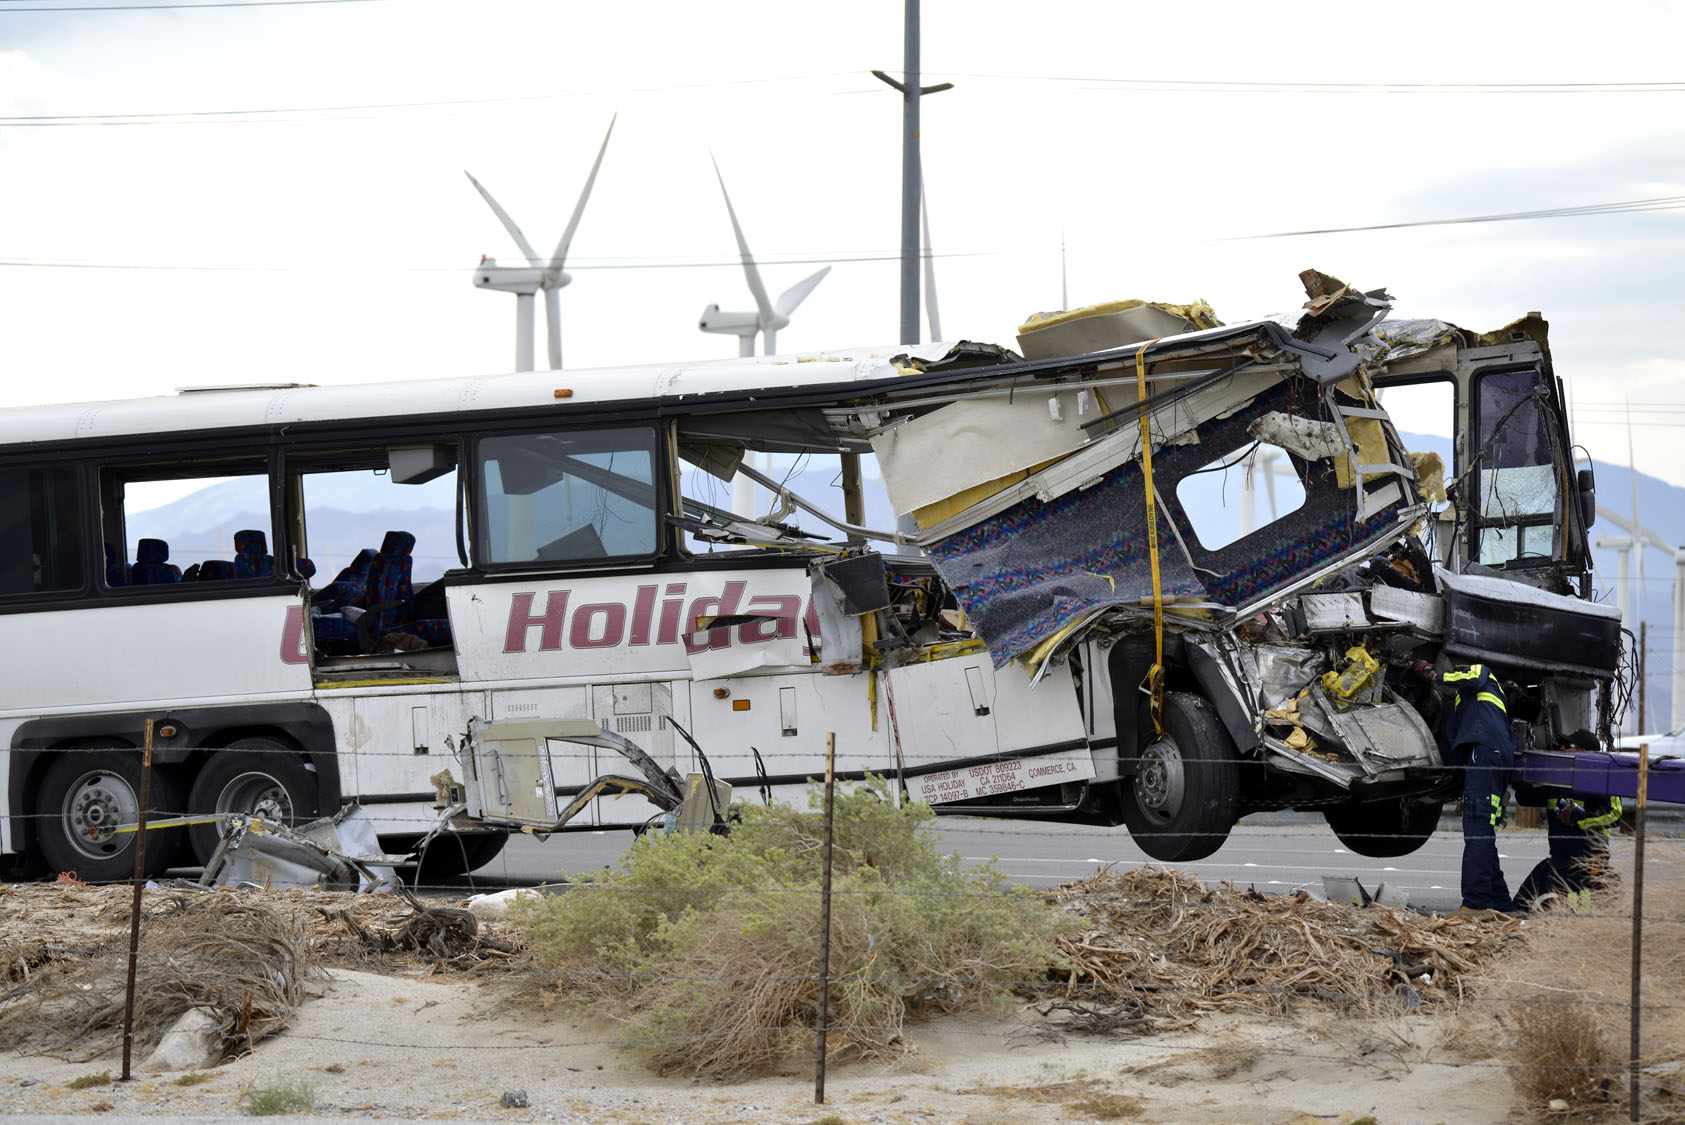 Tour bus crash in Southern California kills 13, injures 31